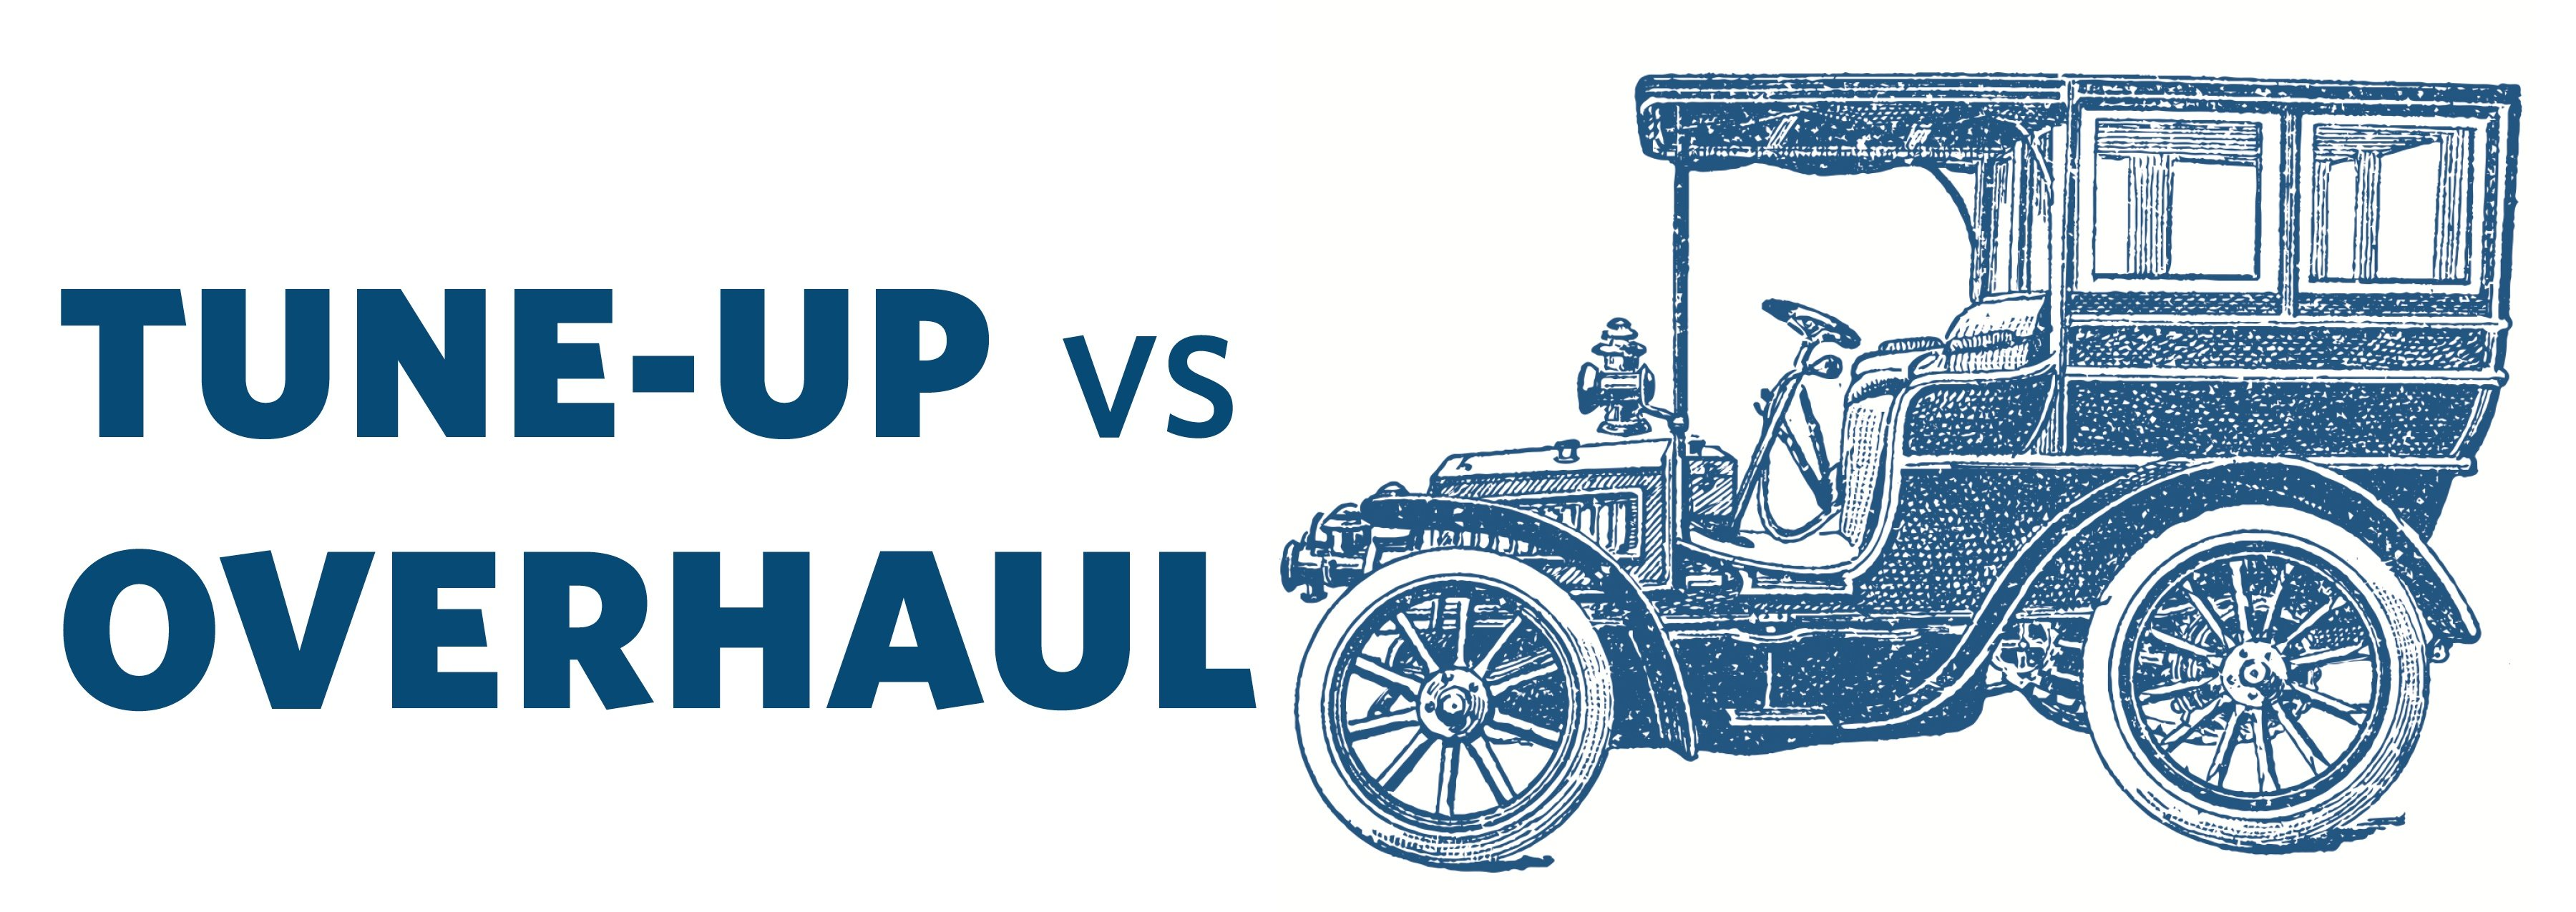 Tuneup vs. overhaul: Does Your Brand Need an Update or Rebrand?